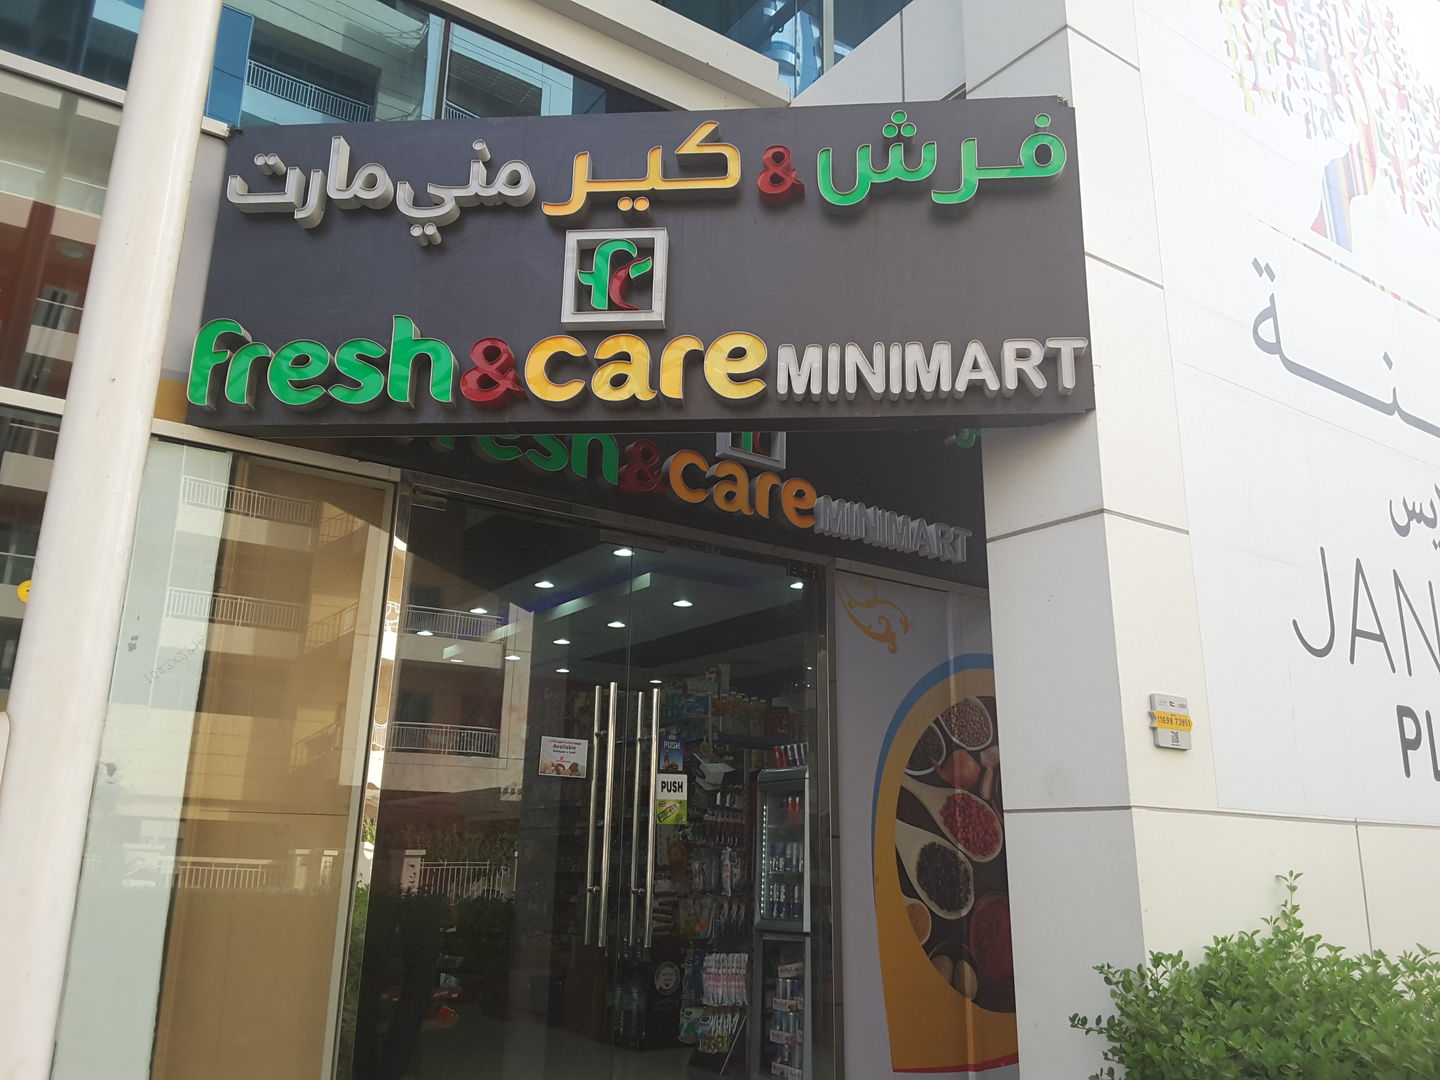 HiDubai-business-fresh-care-minimart-shopping-supermarkets-hypermarkets-grocery-stores-dubai-marina-marsa-dubai-dubai-2